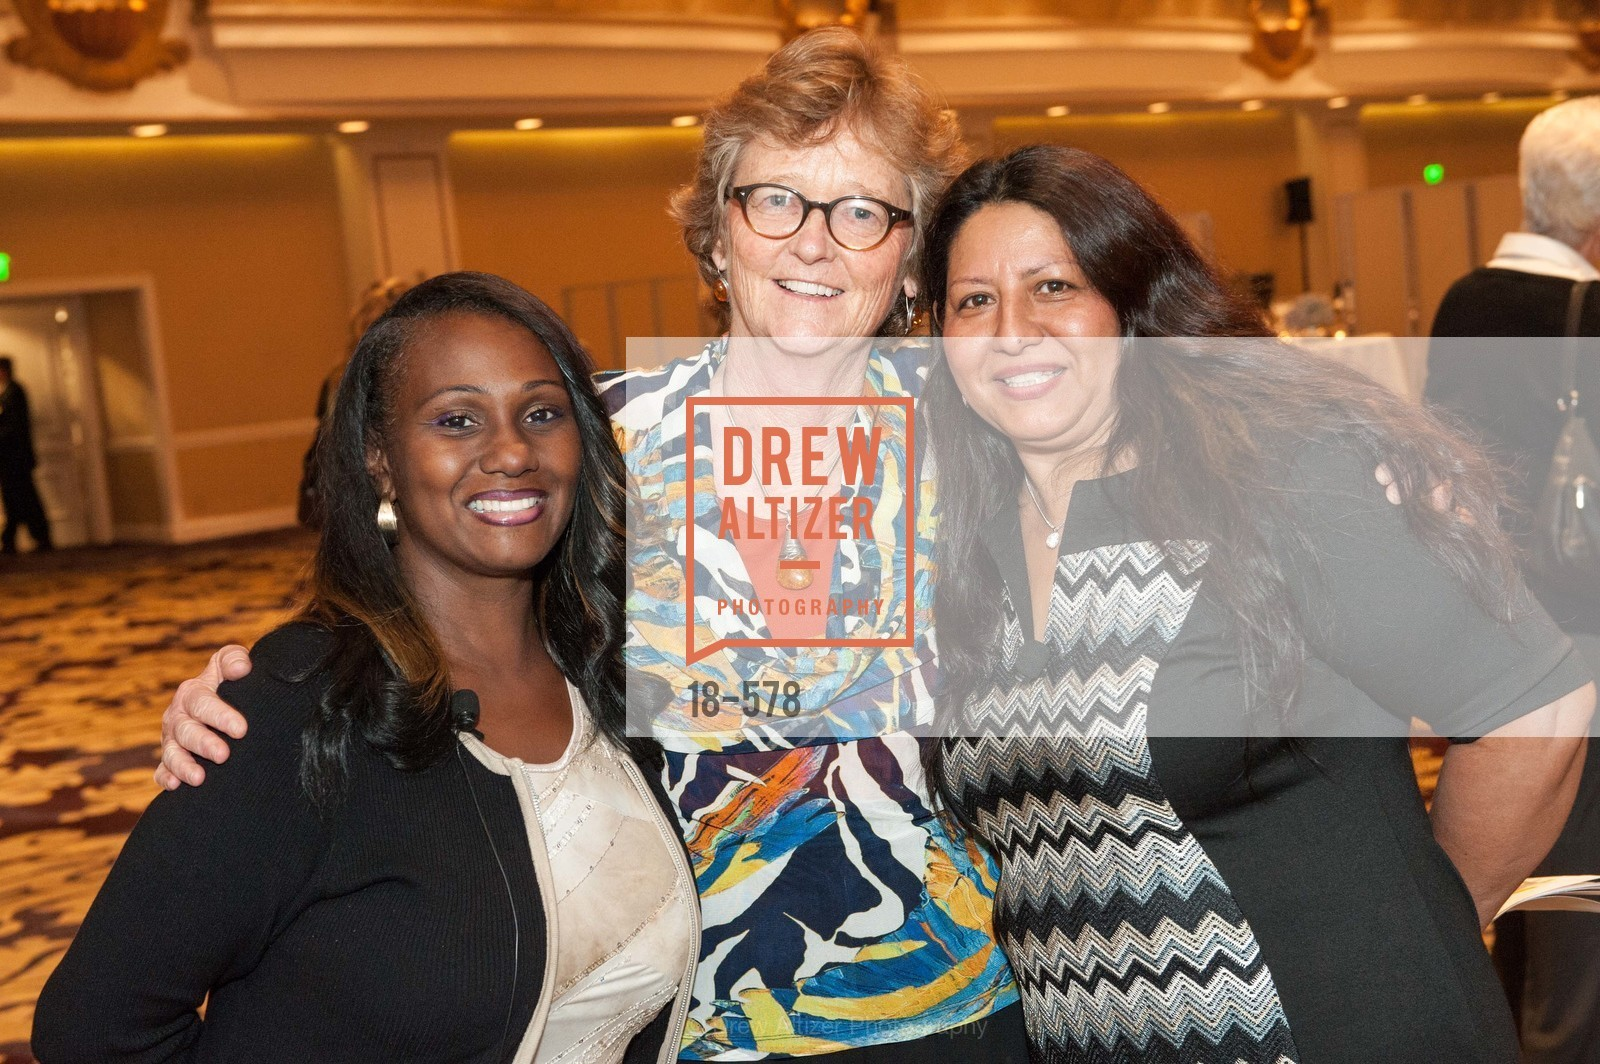 Carla Roberts, Martha Ryan, Sonya Batres, HOMELESS PRENATAL Annual Luncheon 2014, US, September 30th, 2014,Drew Altizer, Drew Altizer Photography, full-service agency, private events, San Francisco photographer, photographer california